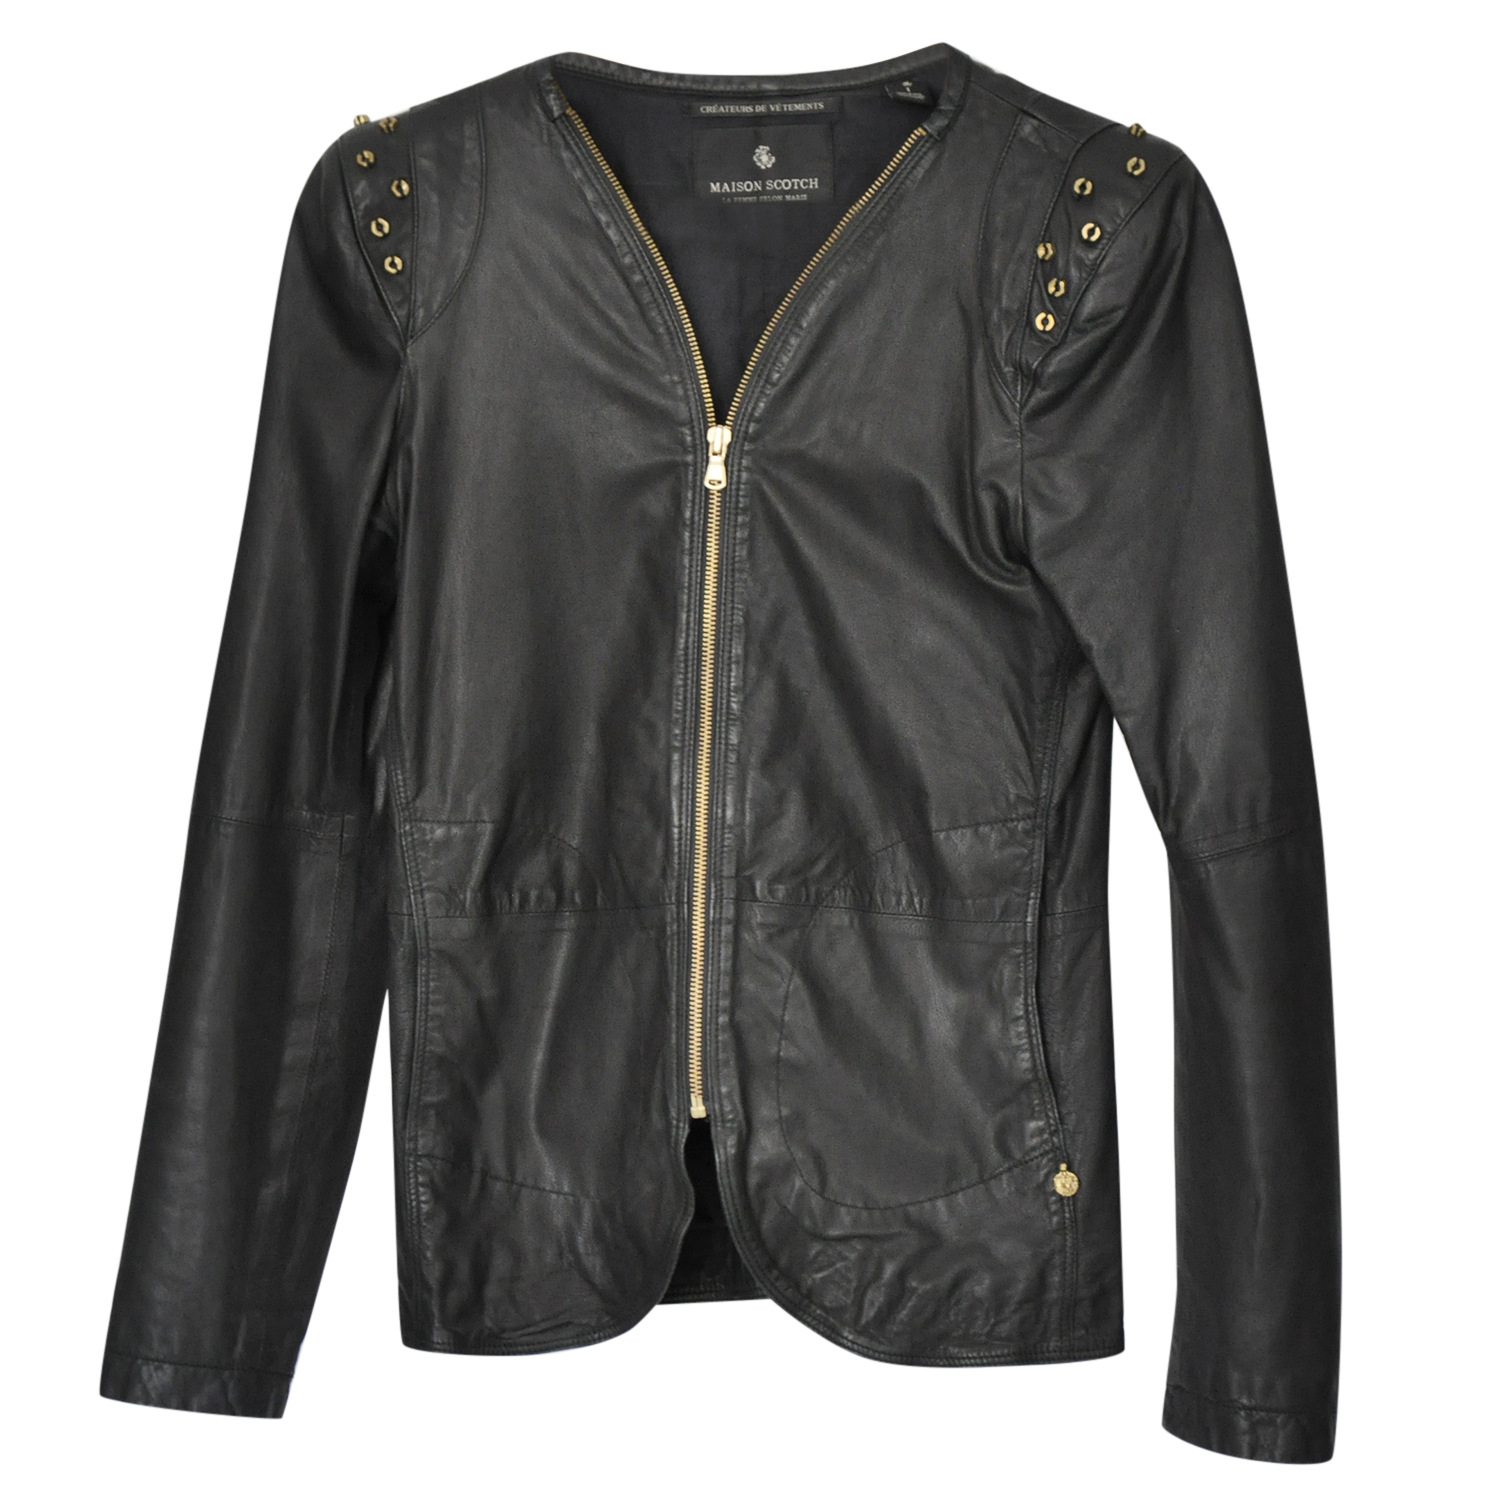 Maison Scotch Leather Studded Jacket